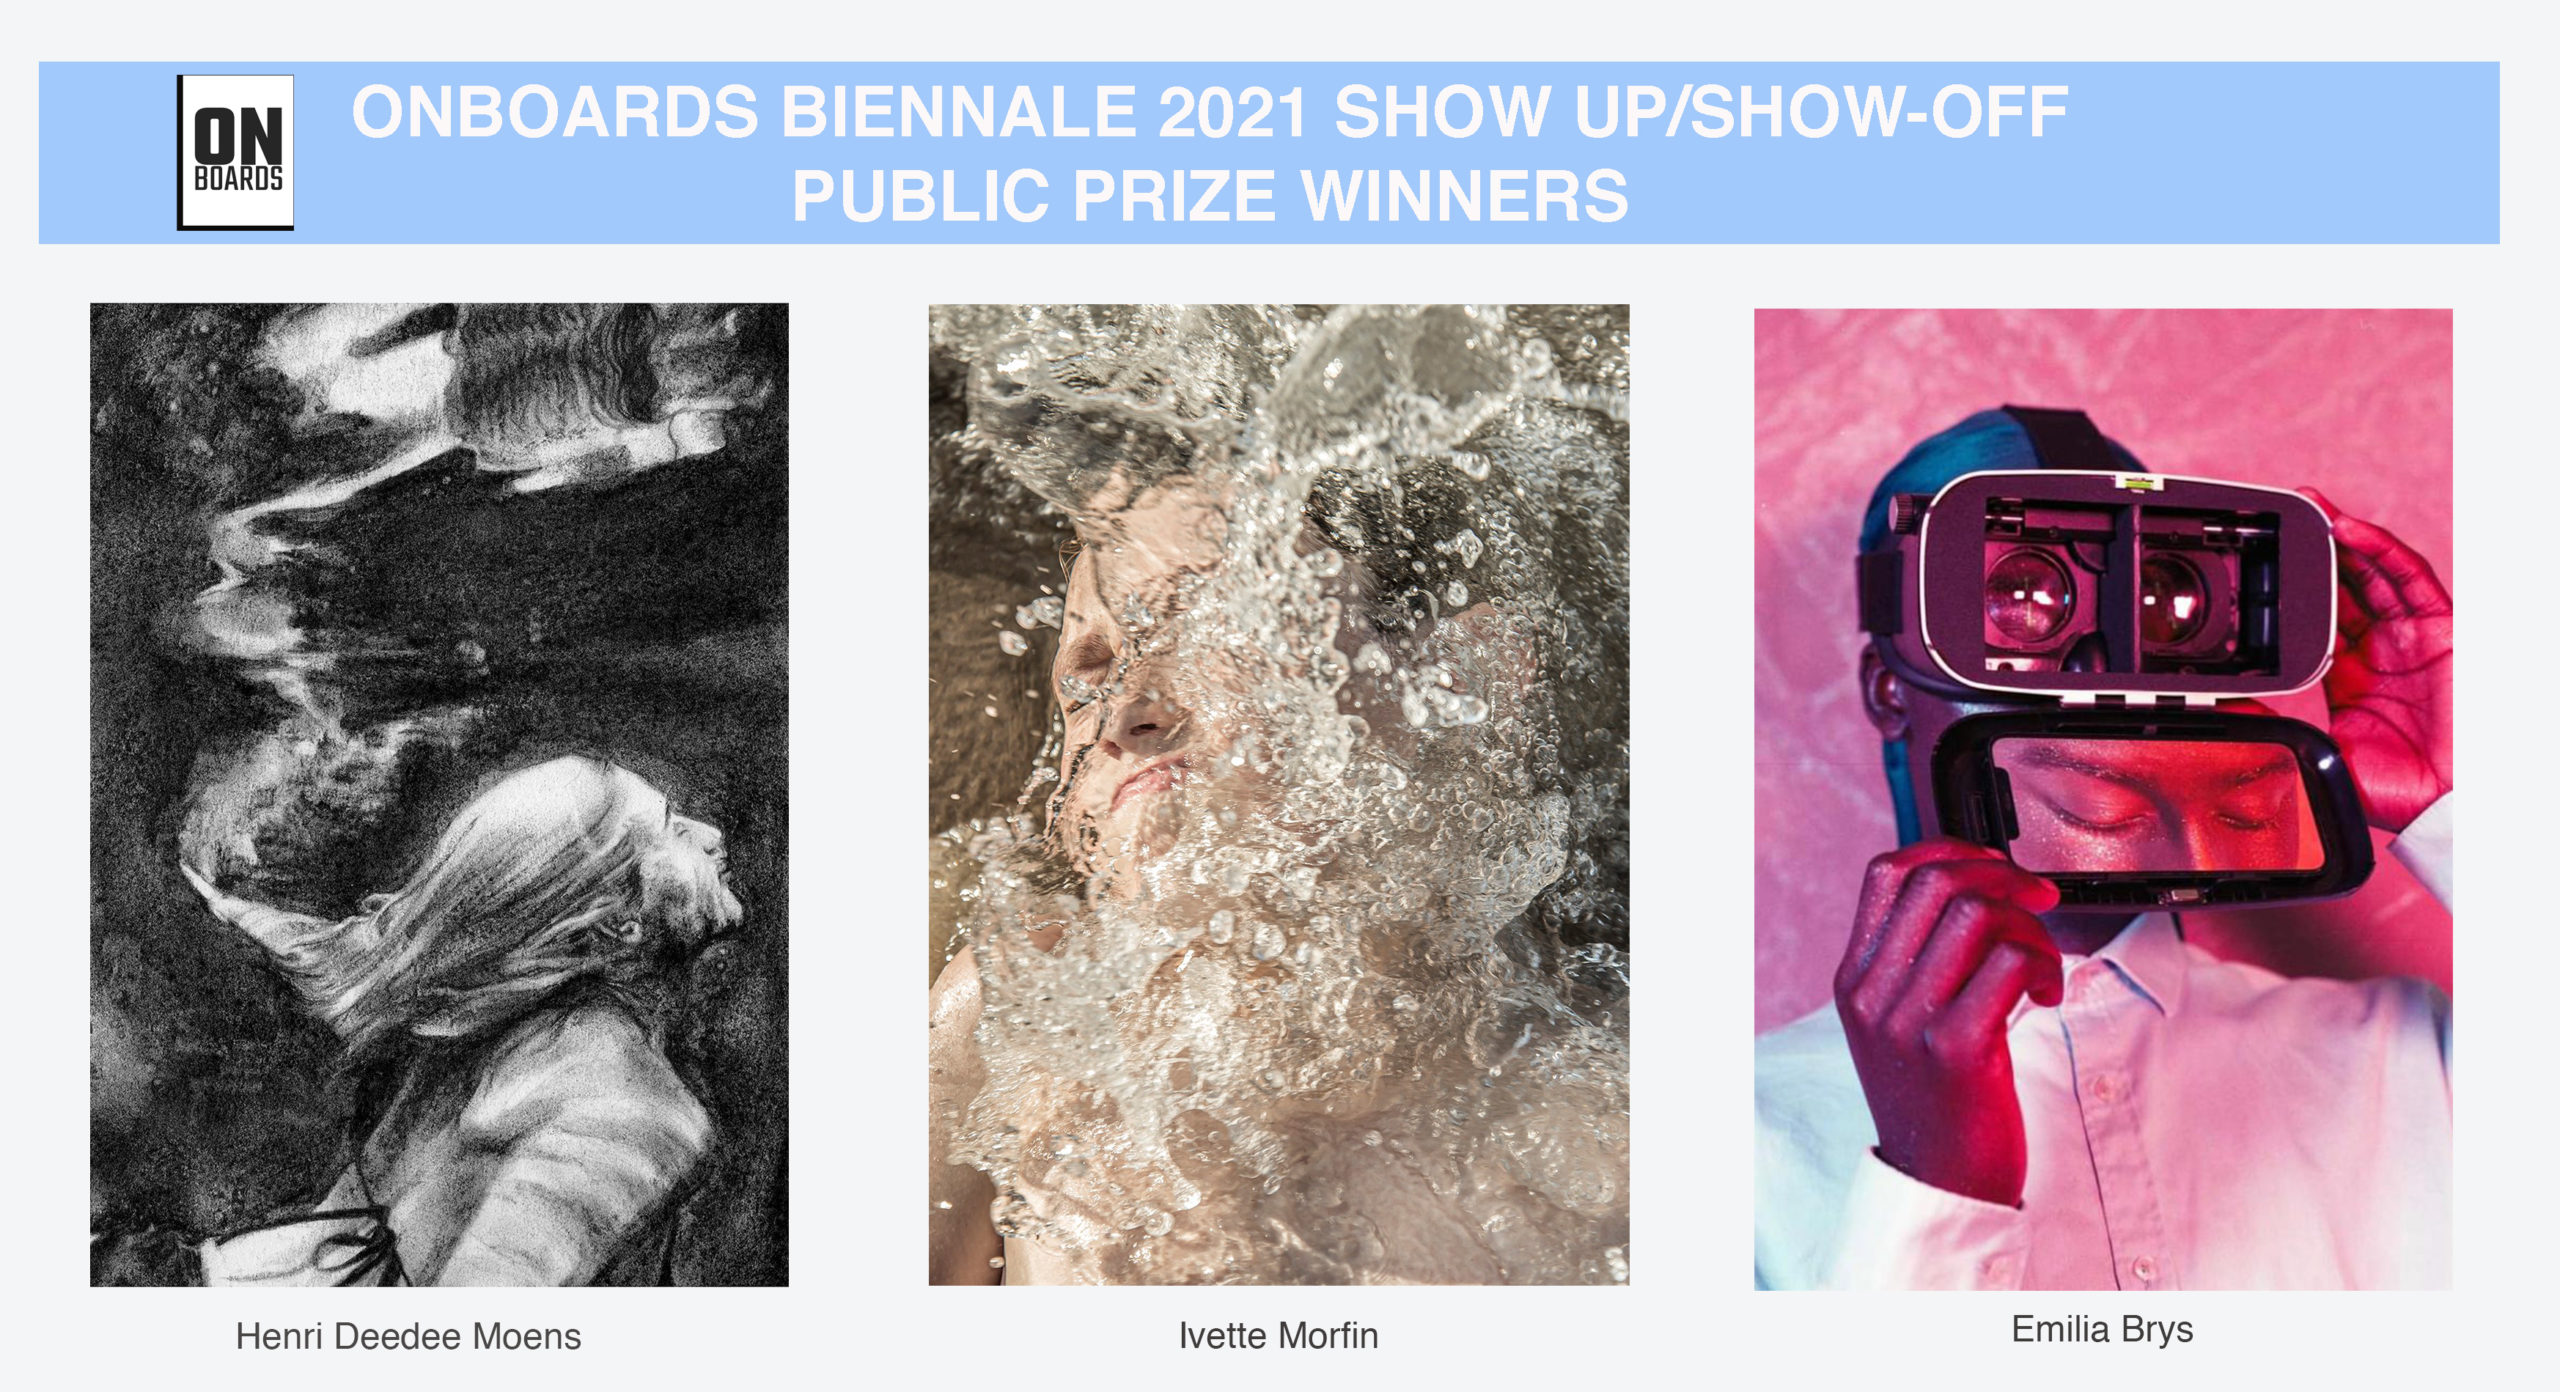 Public Prize Onboards Biennale 2021-Recovered